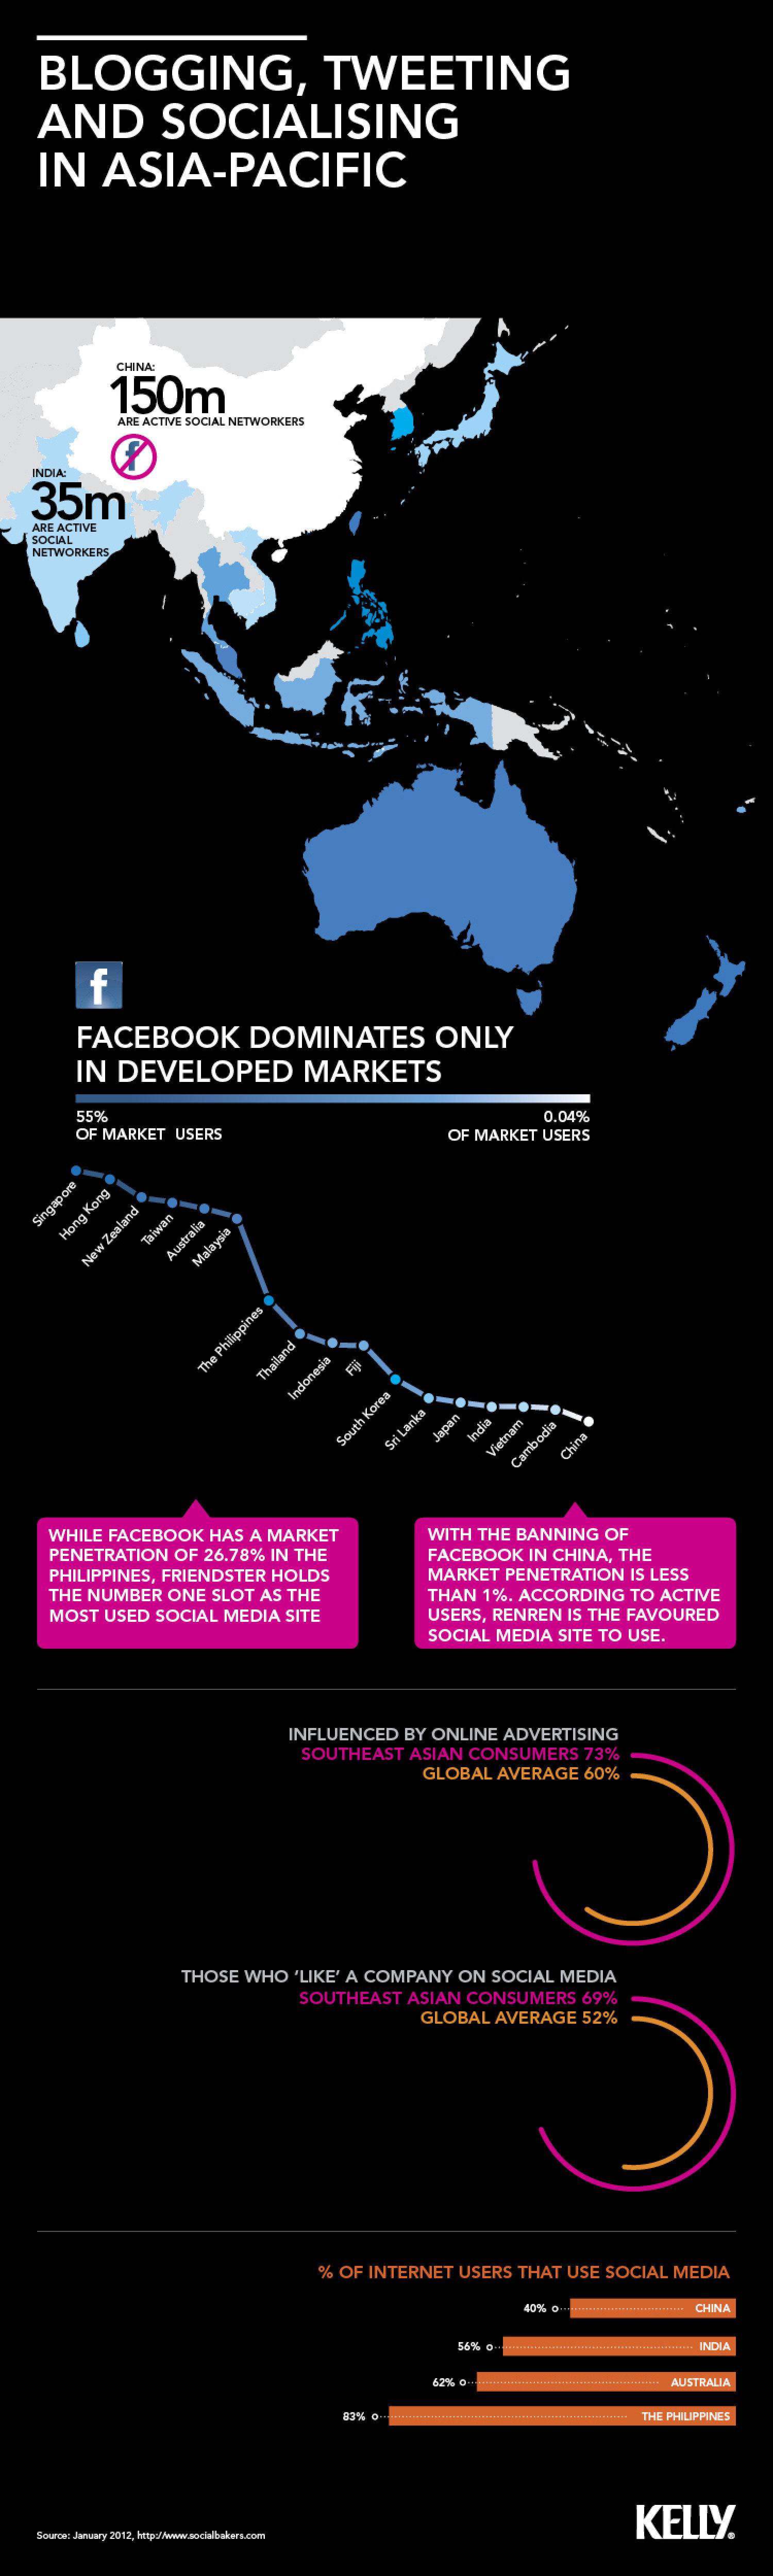 Social Media Trends in Asia-Pacific Infographic